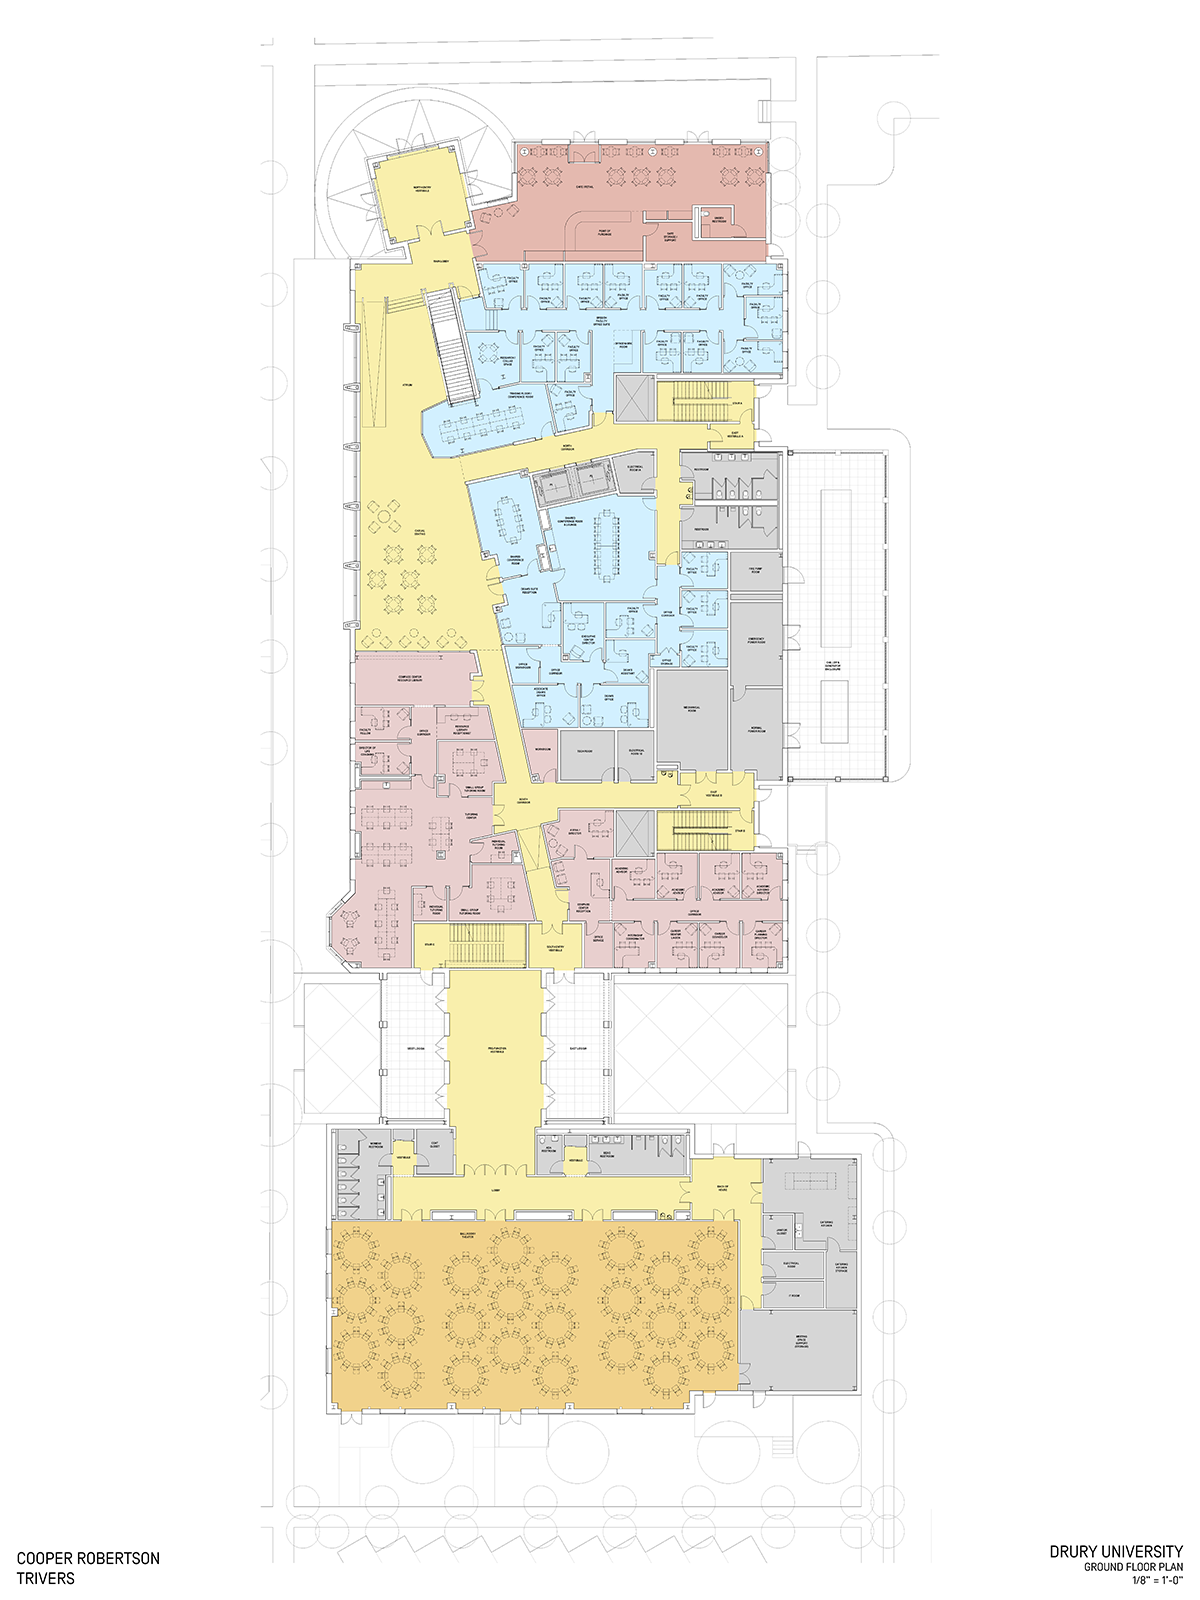 """Ground floor plan for the C.H. """"Chub"""" O'Reilly Enterprise Center and Breech School of Business Administration."""